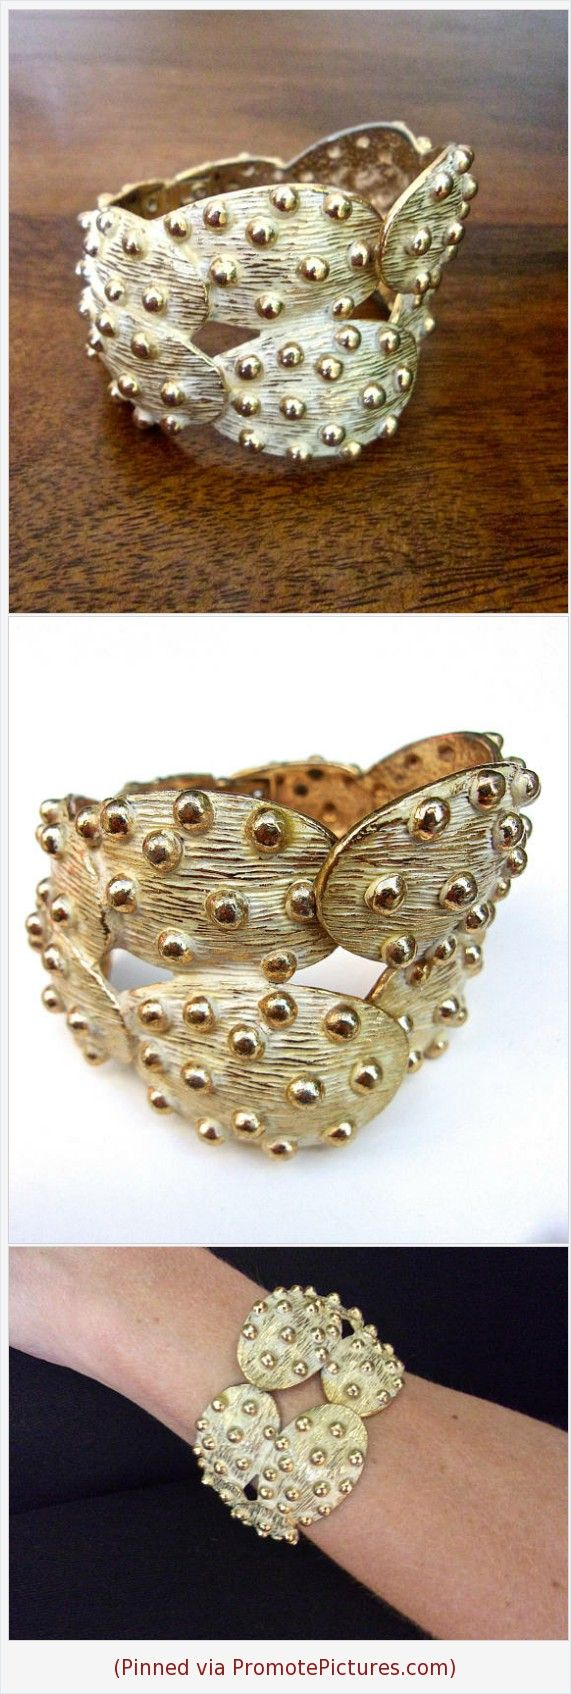 Gold Tone Bracelet Hinged Cuff, Prickly Pear Cactus Tortolani Style, Vintage, #bracelet #pricklypear #cactus #goldtone #whiteenamel #textured #vintage #tortolani #hinged https://www.etsy.com/RenaissanceFair/listing/542776828/gold-tone-bracelet-hinged-cuff-prickly?ref=listings_manager_grid  (Pinned using https://PromotePictures.com)